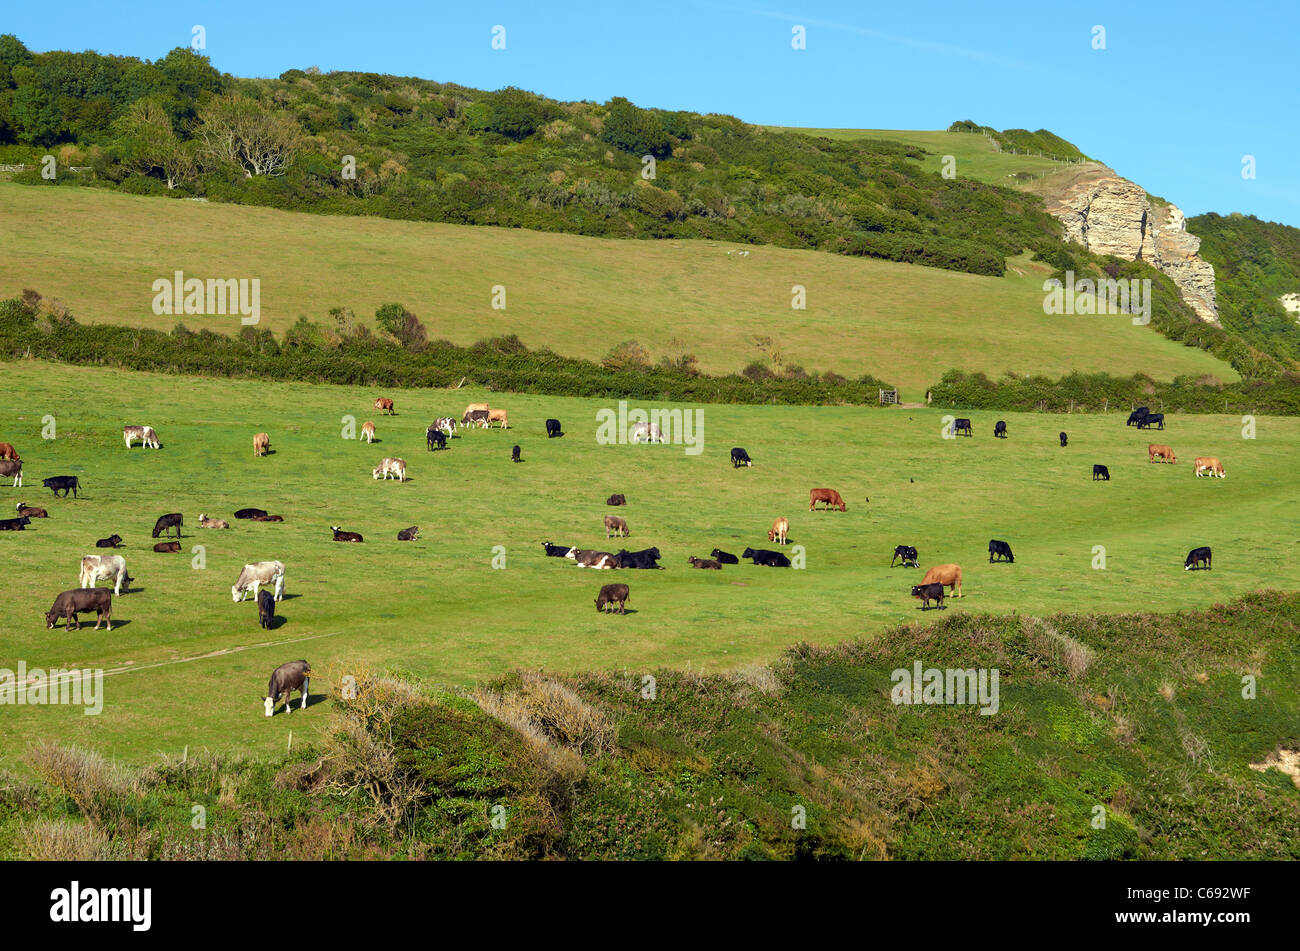 Cattle grazing on cliff top pasture above the beach at Branscombe, Devon, England - Stock Image